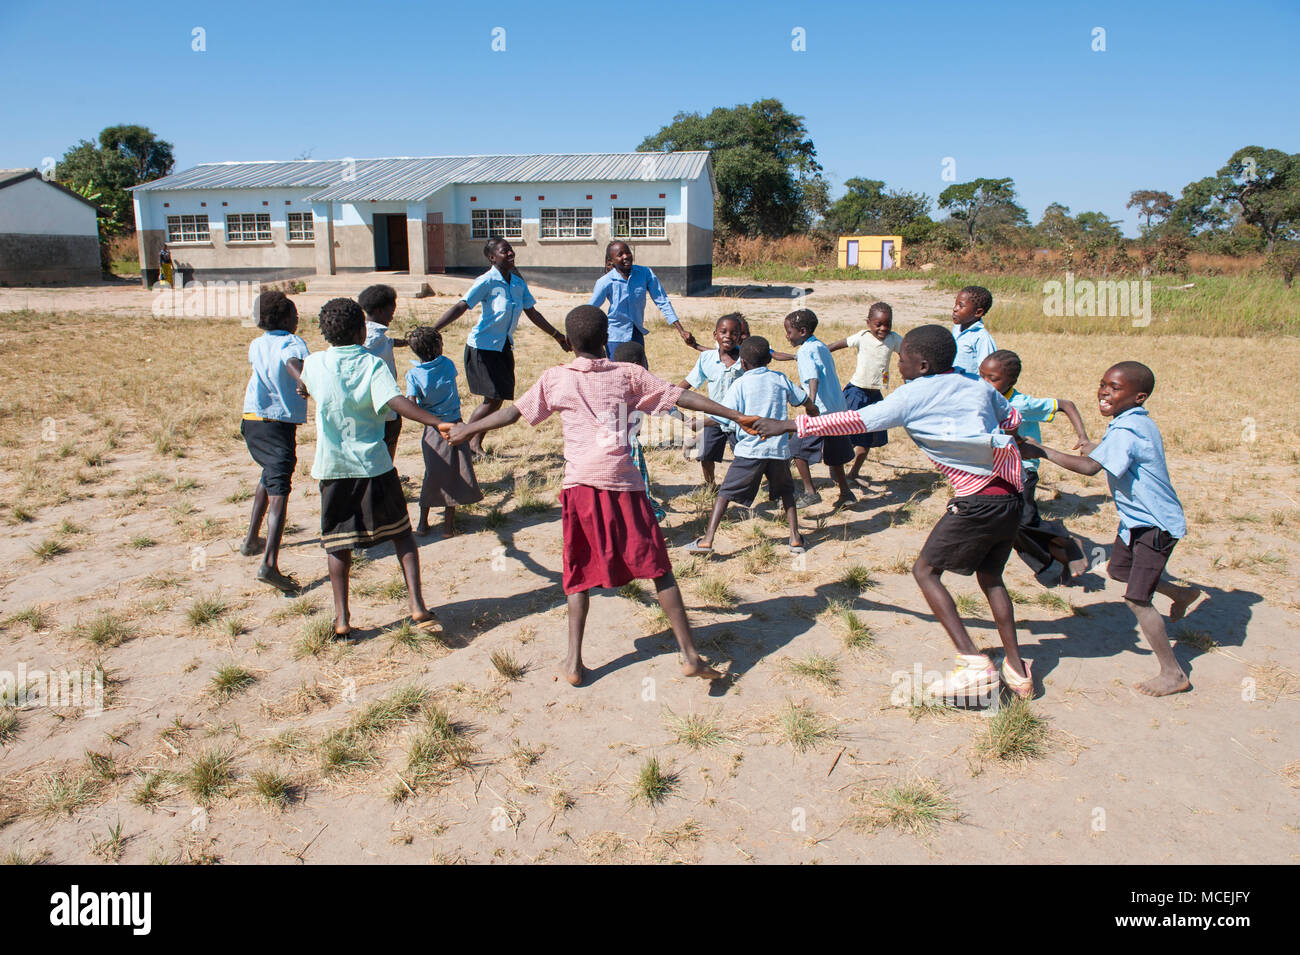 Africa, Zambia school children playing. - Stock Image